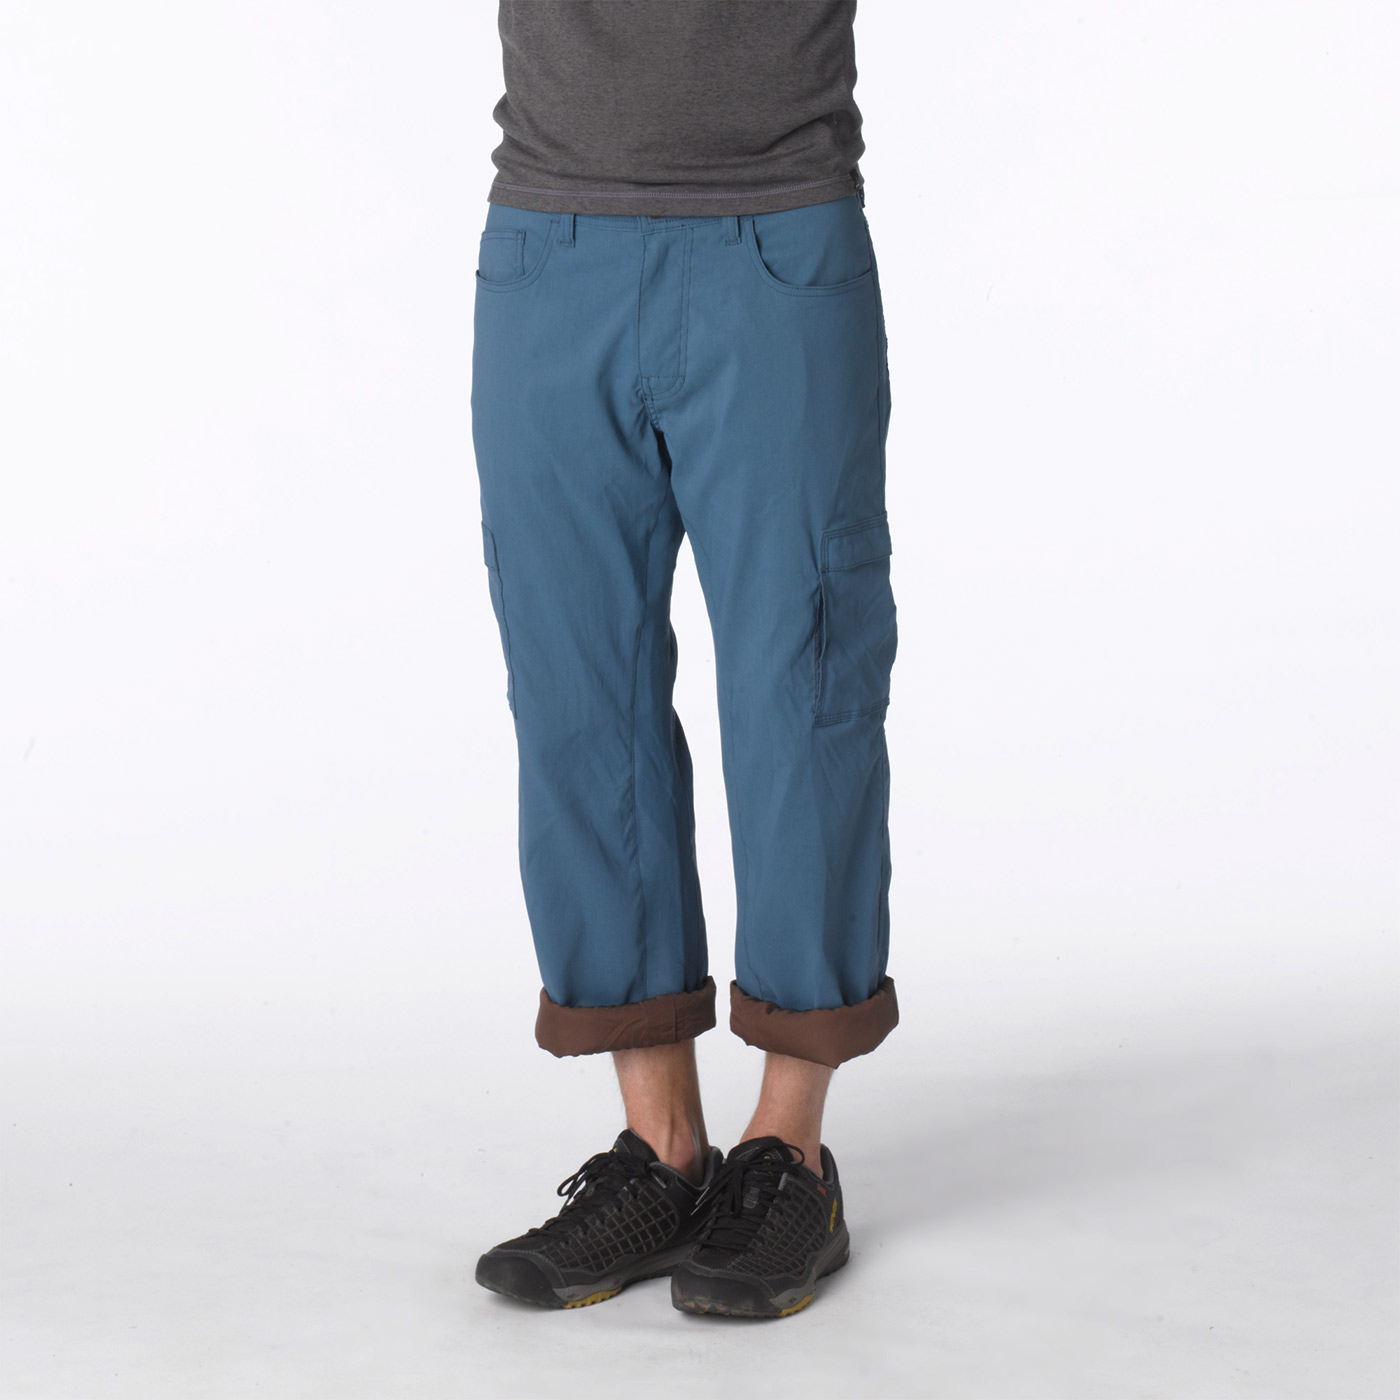 Prana Stretch Zion Lined Pant Mens Apparel At Vickerey